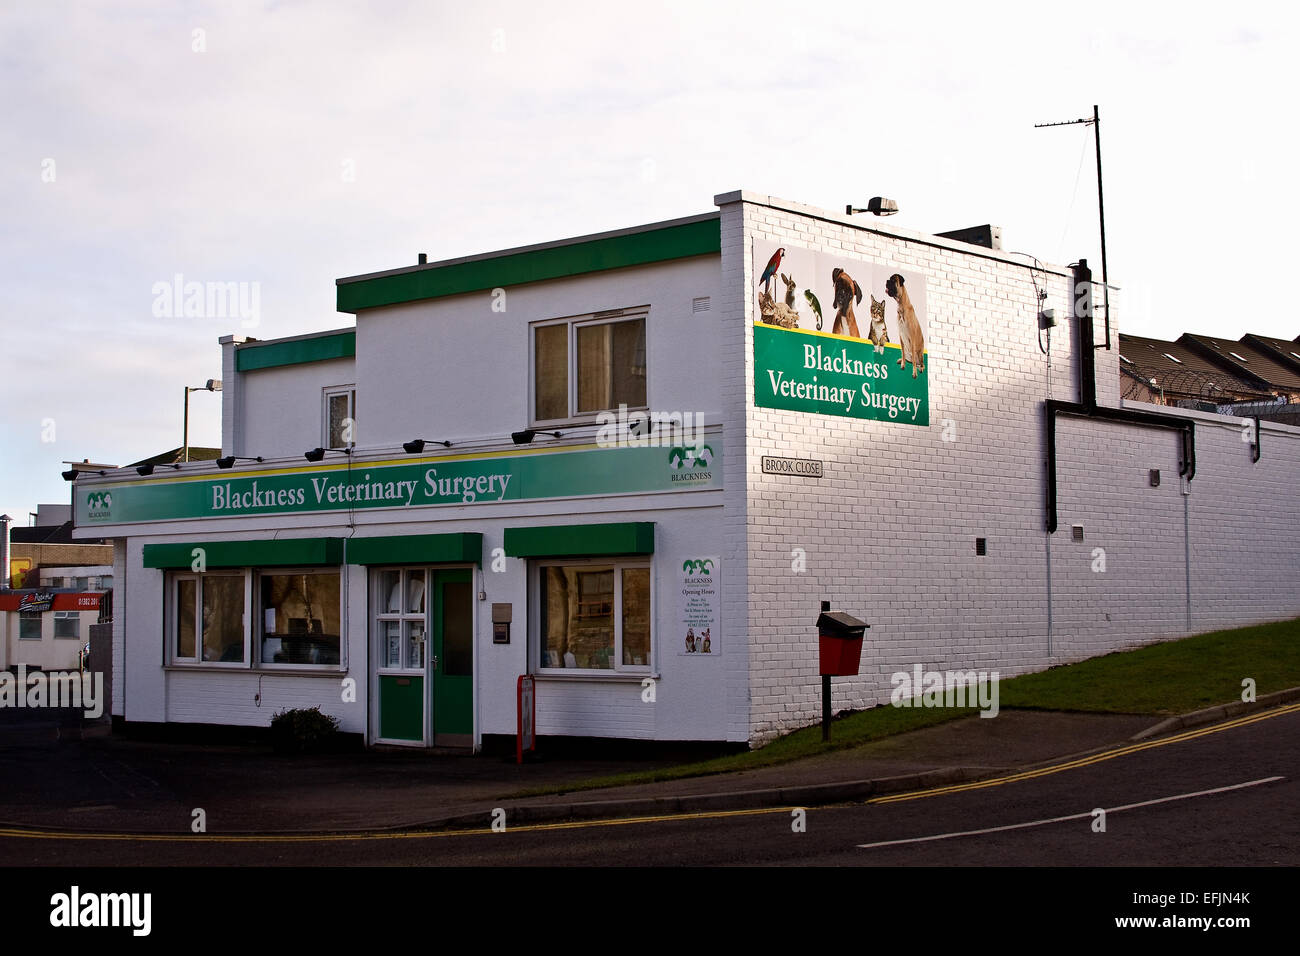 The Blackness Veterinary Surgery is situated along Brook Street in Dundee, UK - Stock Image